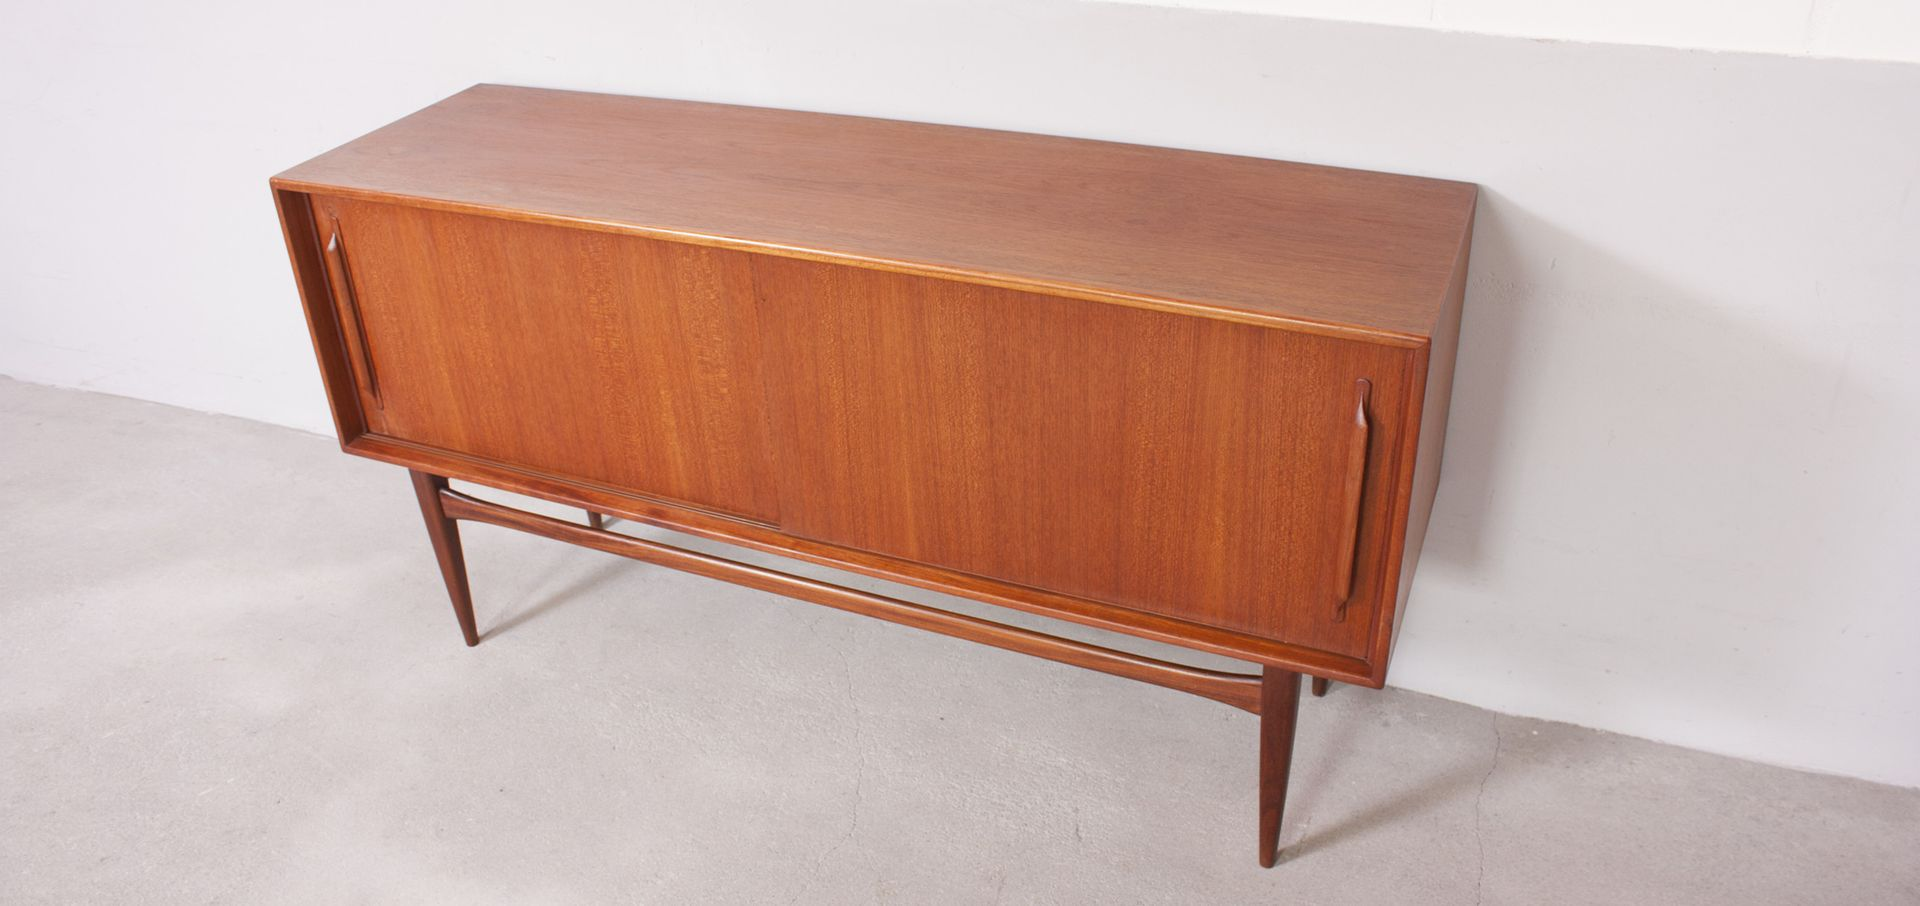 german vintage teak sideboard from rt m bel 1960s for sale at pamono. Black Bedroom Furniture Sets. Home Design Ideas